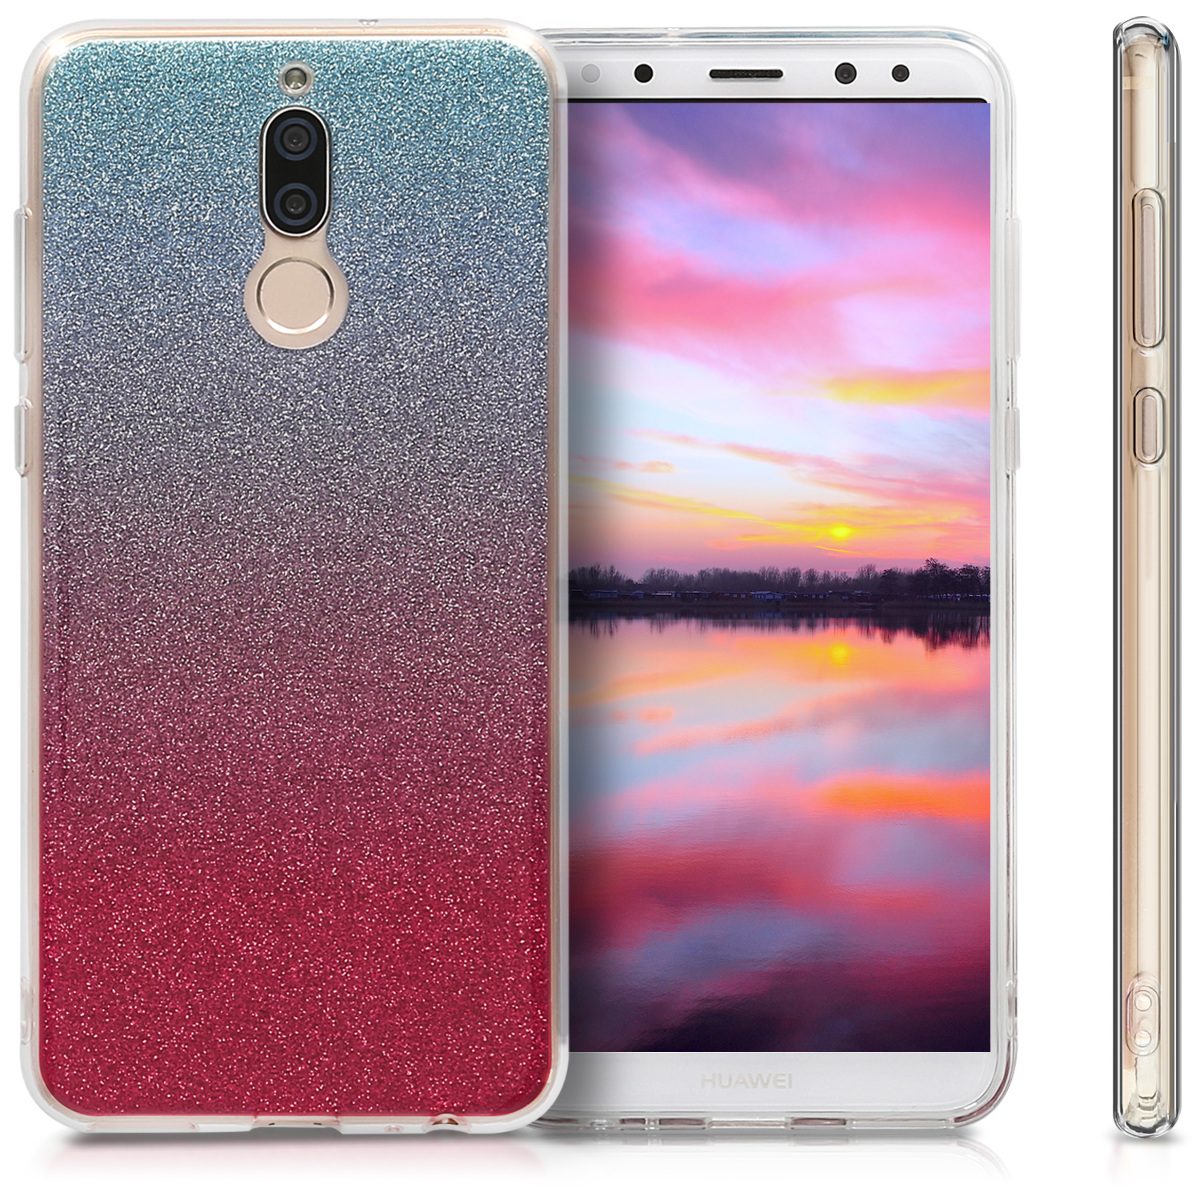 Kwmobile coque pour huawei mate 10 lite housse housse for Housse huawei mate 10 pro